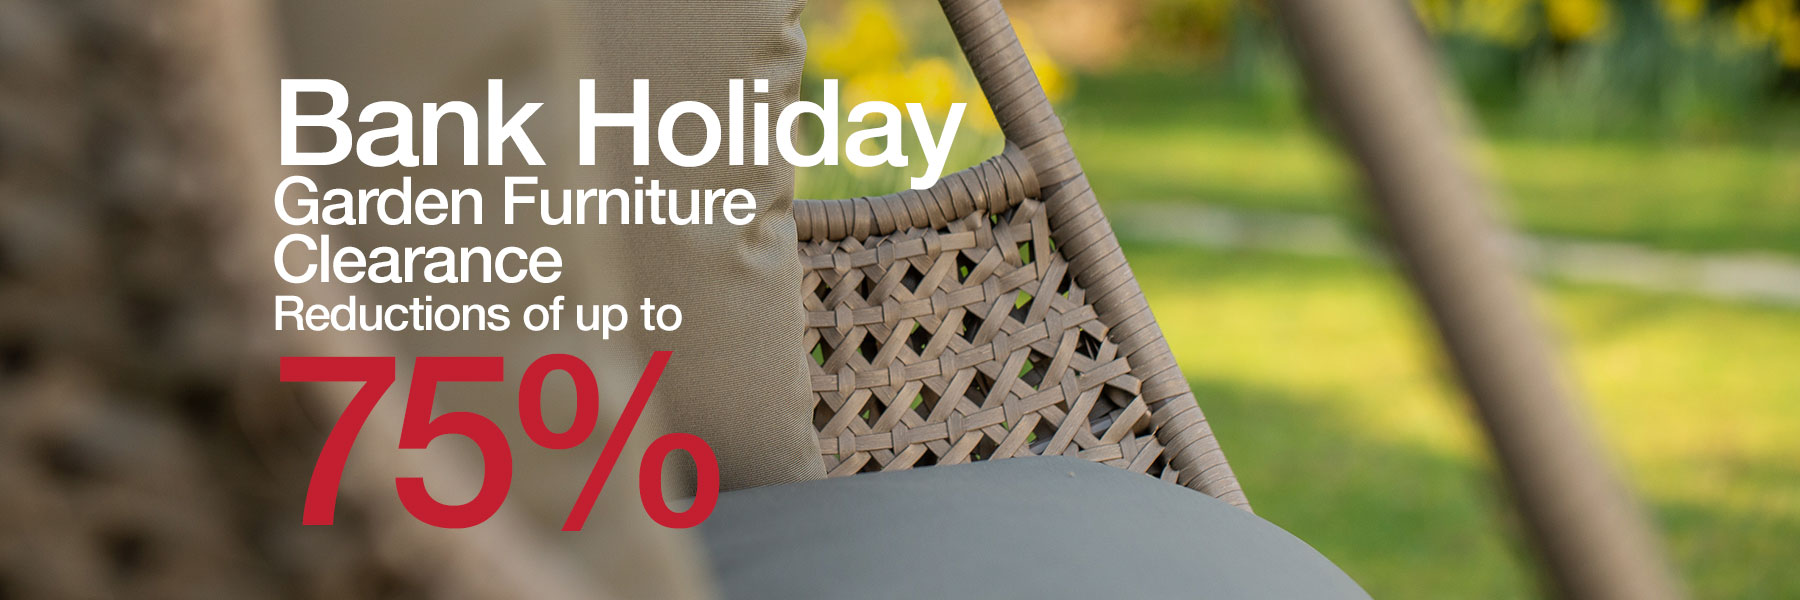 Bank Holiday Sale Save up to 75% off Garden Furniture